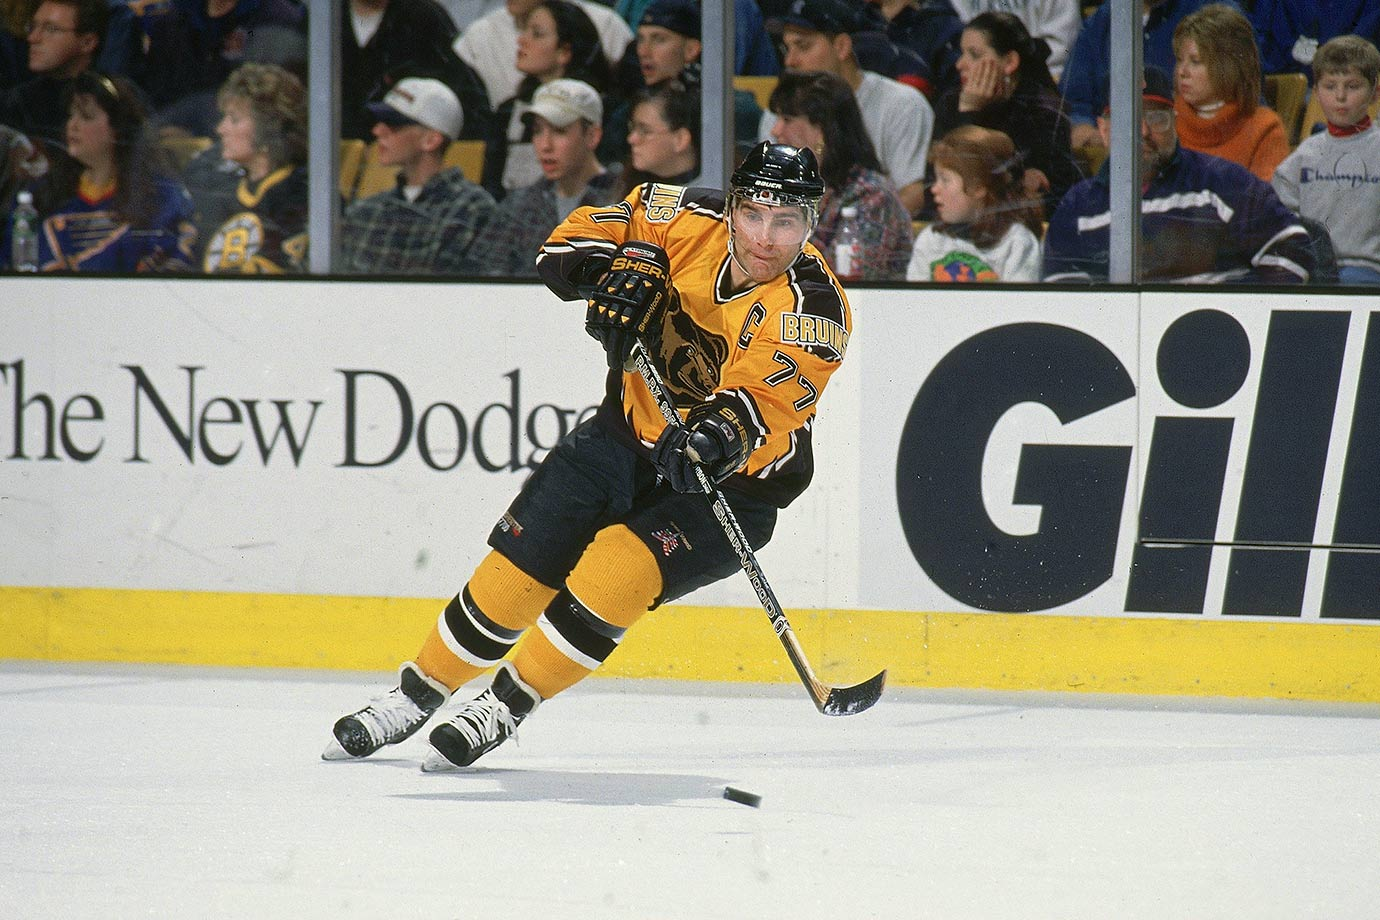 Feb. 8, 1997 — Boston Bruins vs. St. Louis Blues